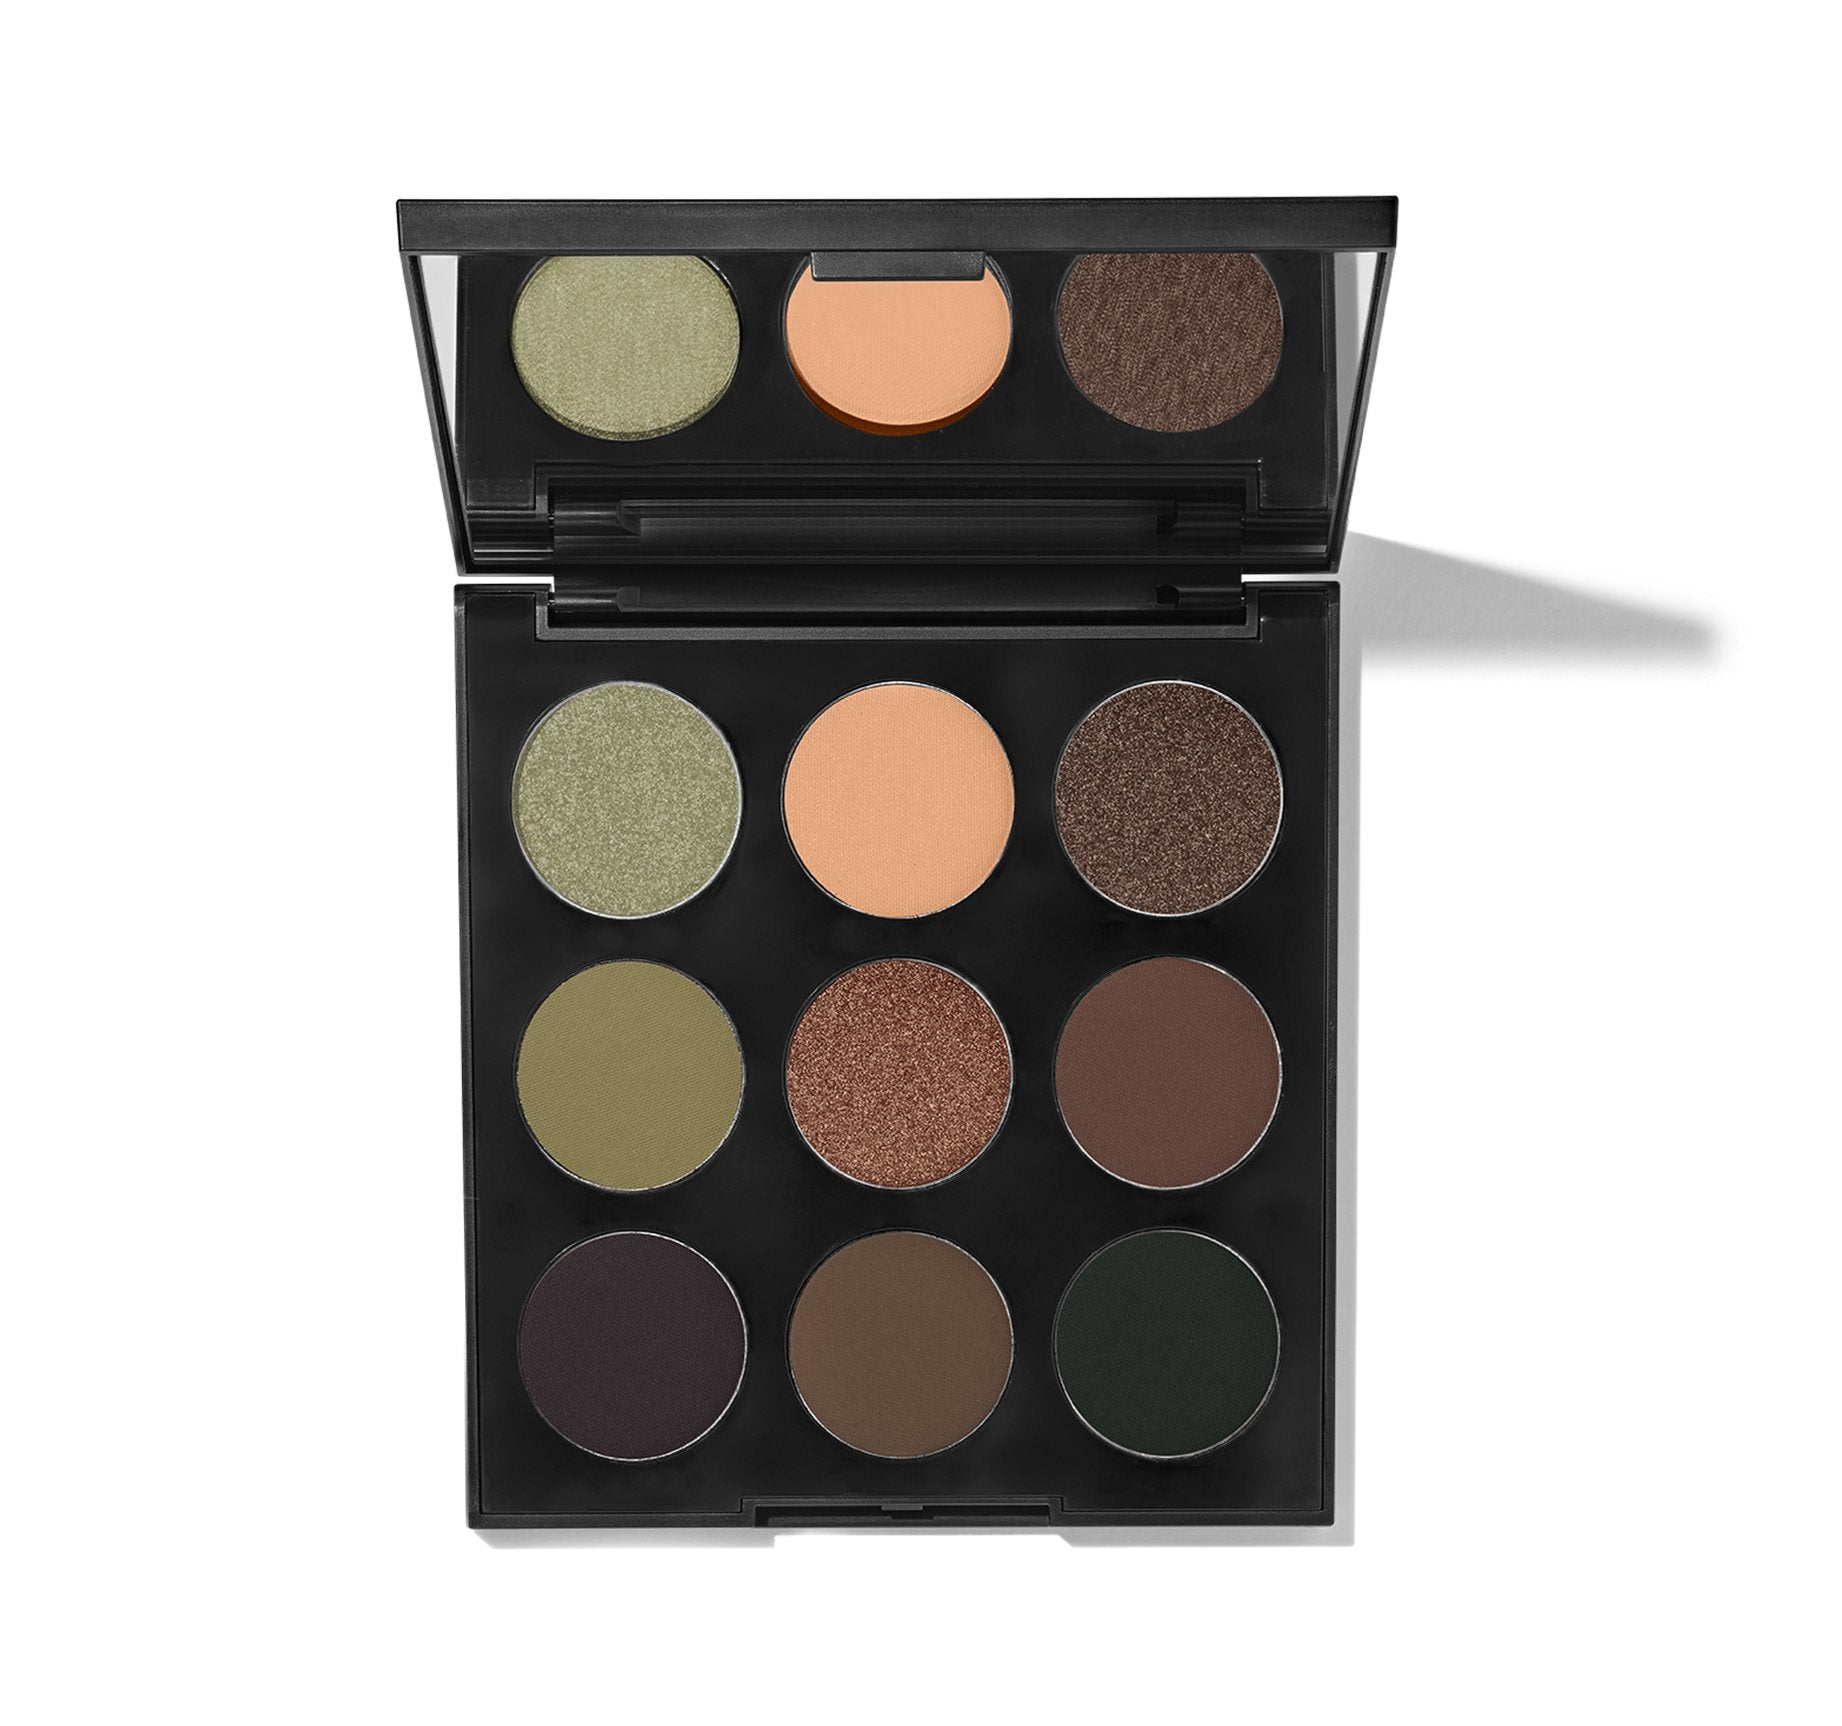 9K KHAKI CALLING ARTISTRY PALETTE, view larger image